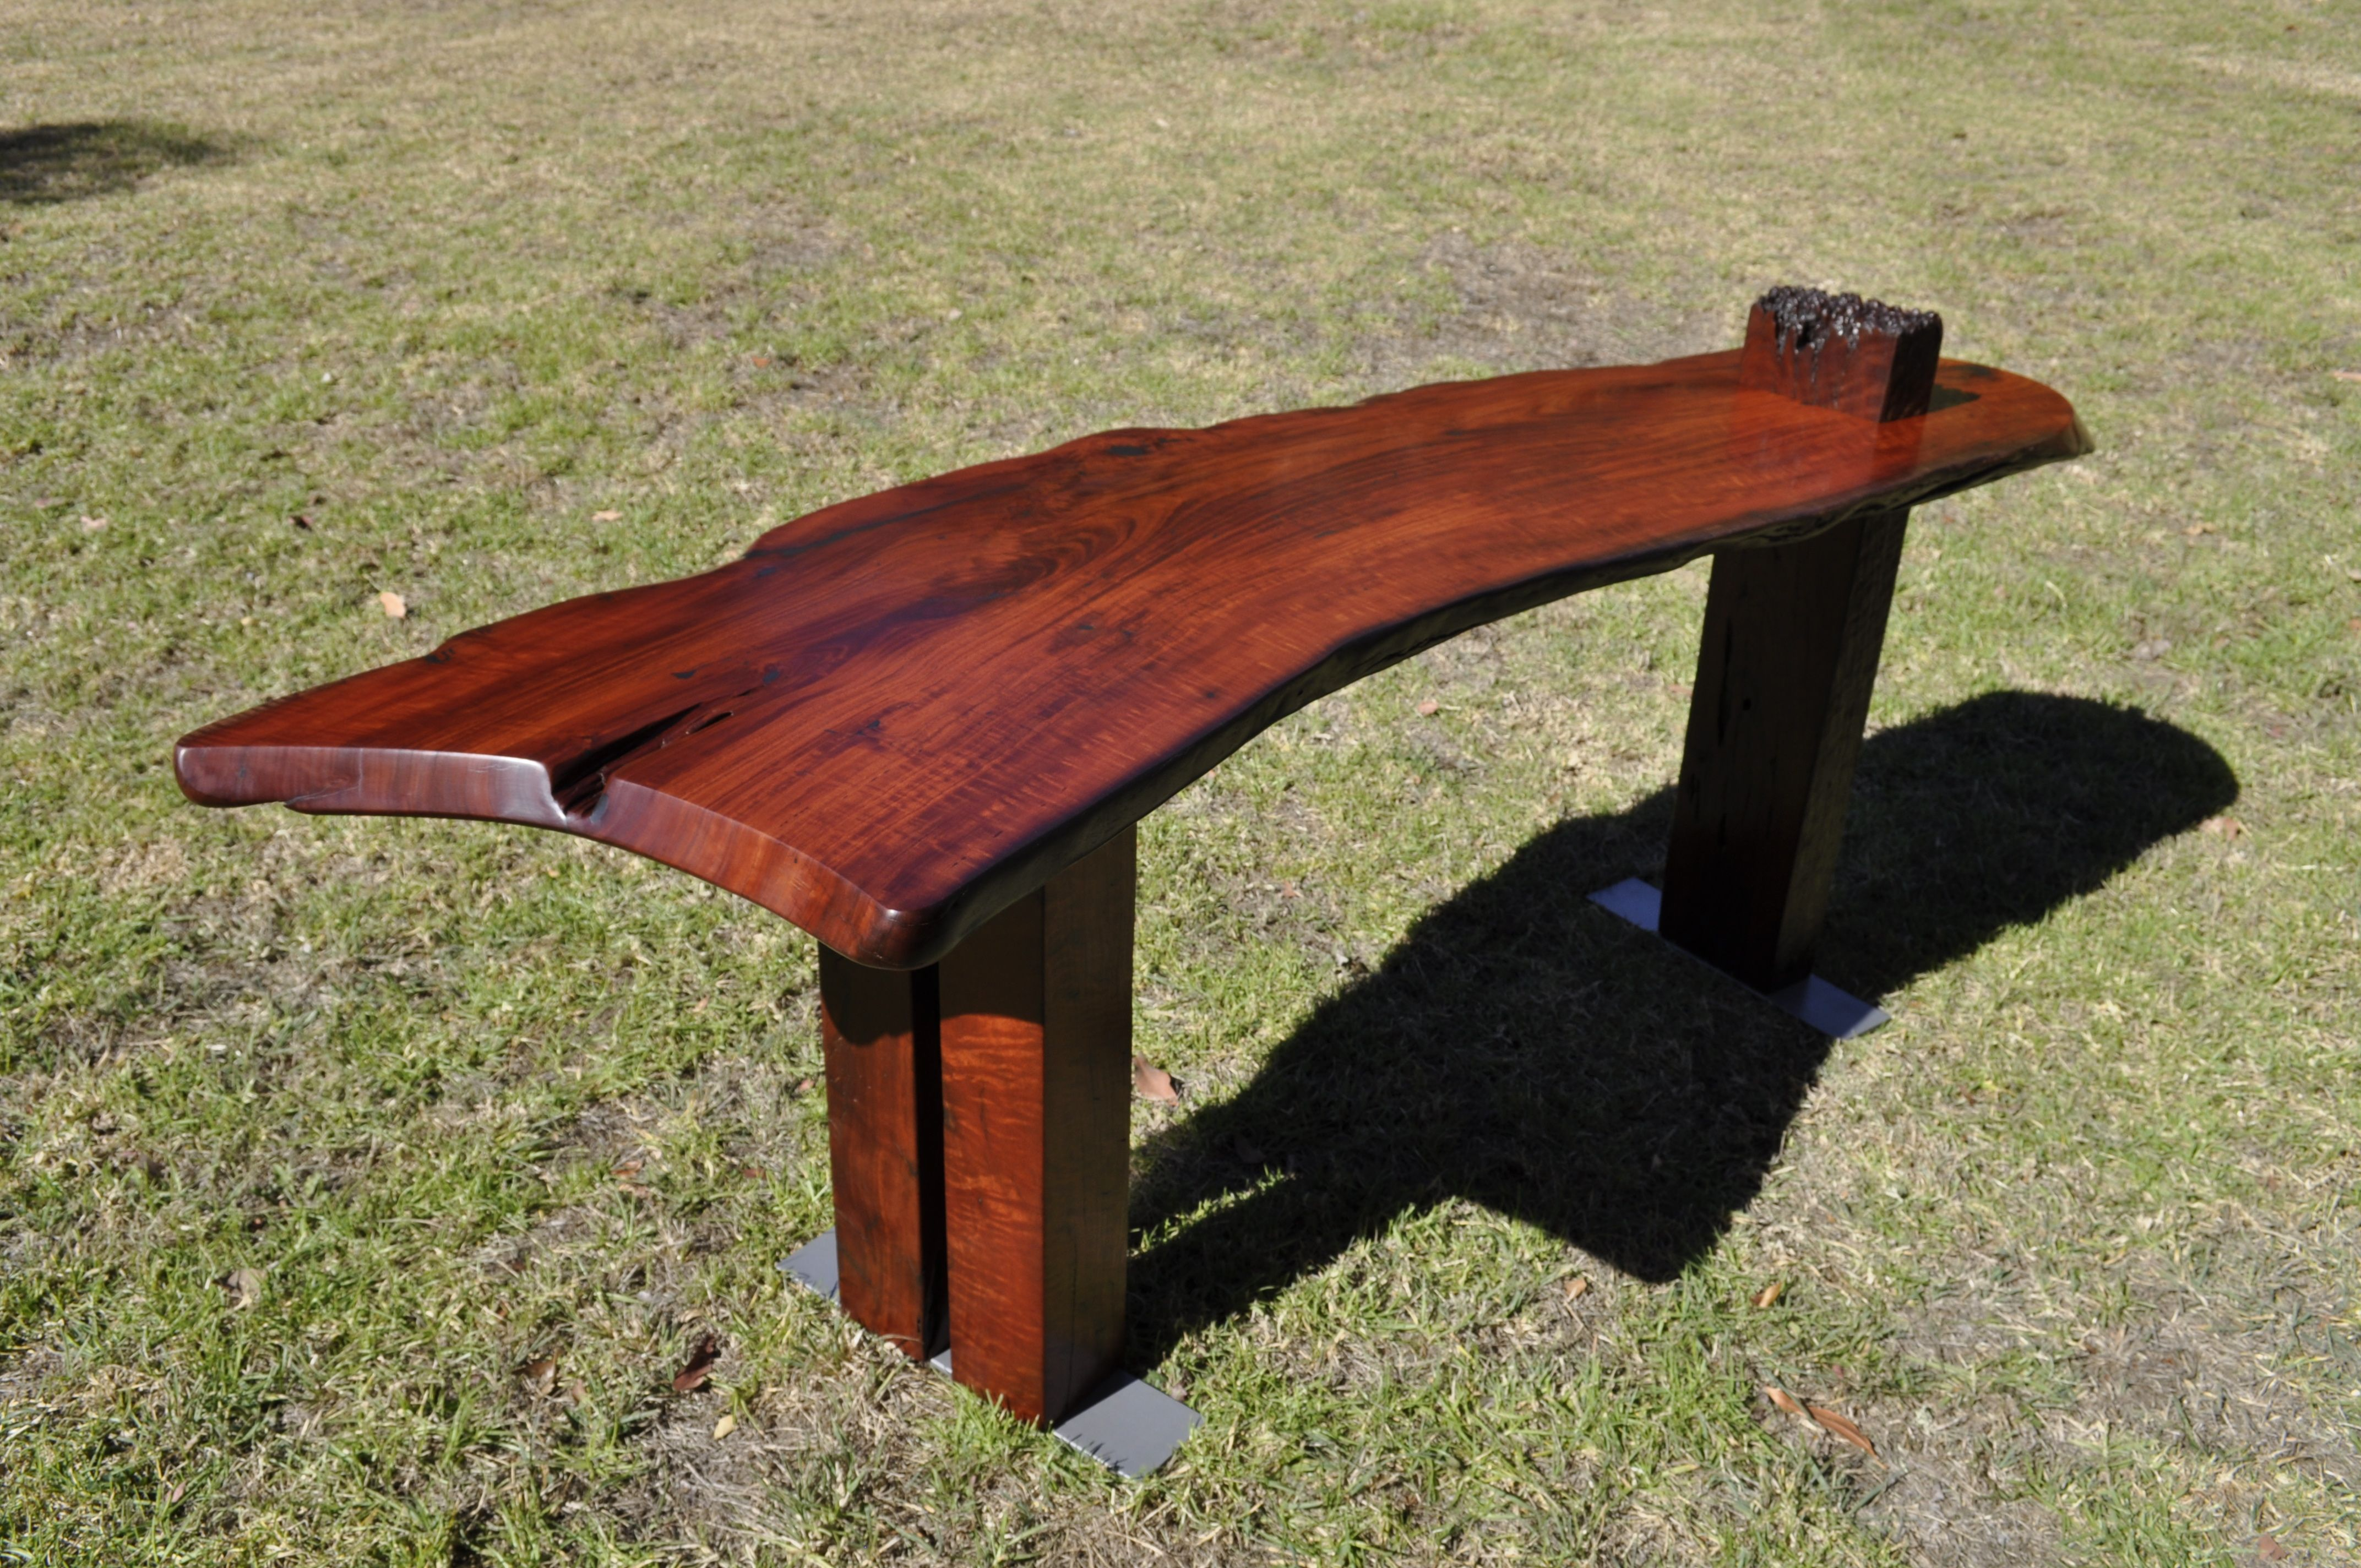 'Live Edge - Boomerang' - This single slab of Redgum in my opinion resembling the shape of a boomerang, has natural live edges and has been finished in a burnishing process with an all natural tung oil mix.   The legs are old salvaged fence posts and recycled steel for the base, with visible pitting on the steel from the years exposed to the elements. The weathered salvage fence post protrudes through the #desk top for a bit of a cool feature. Warning: This table if thrown may not come back!